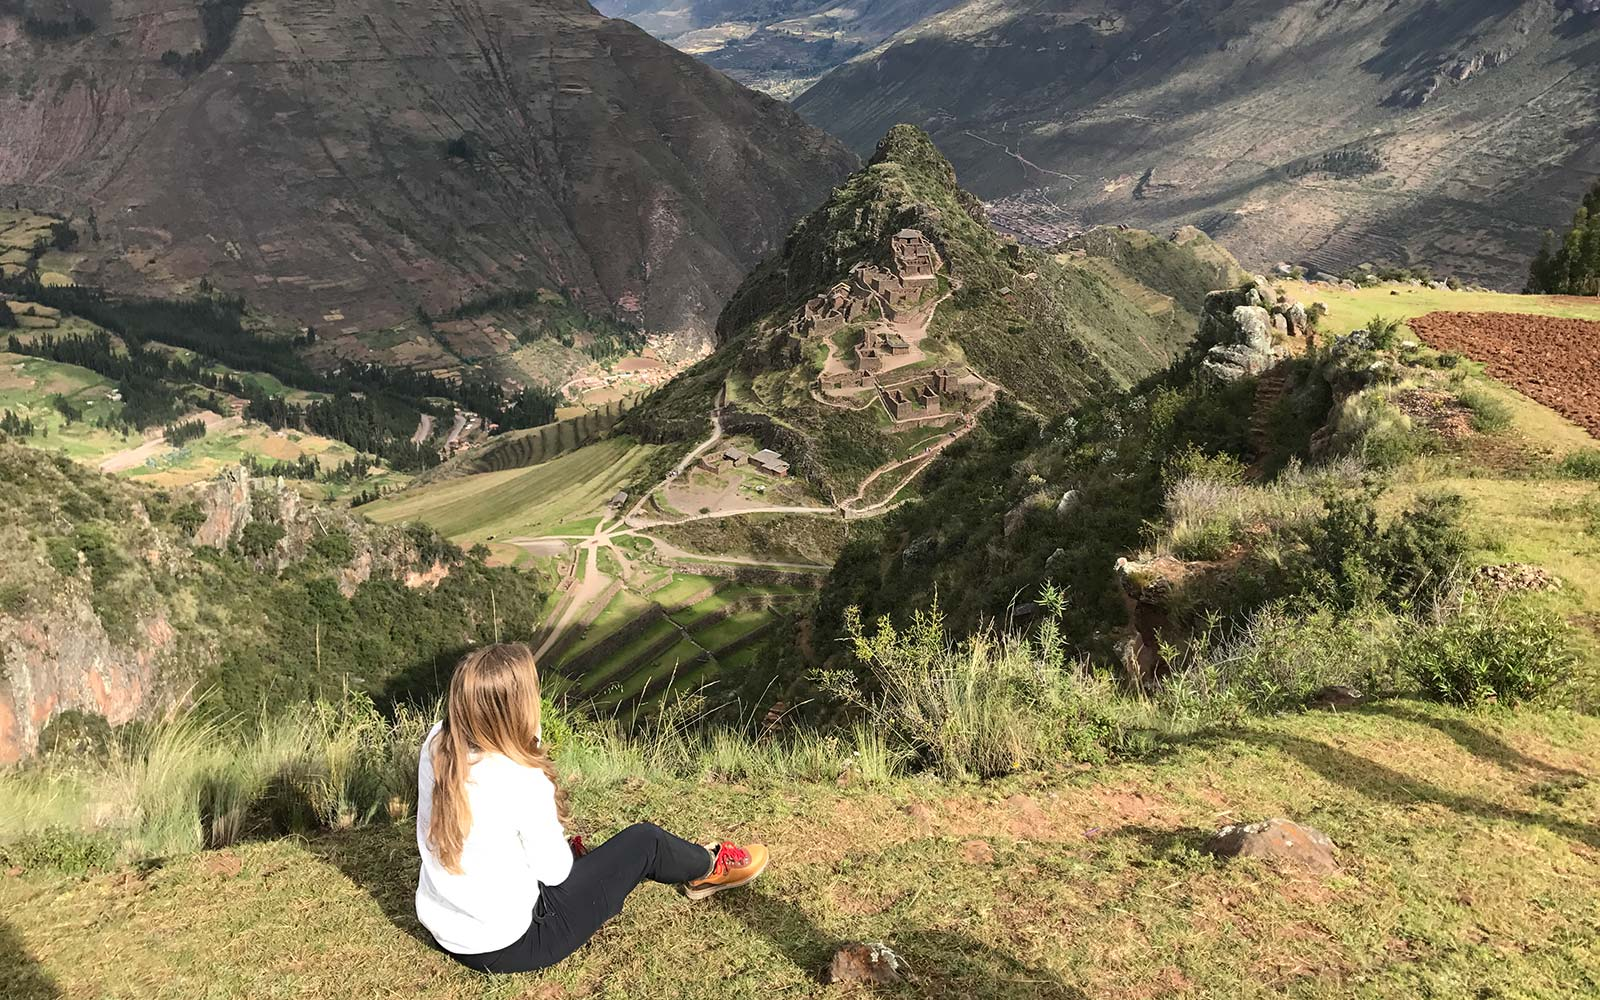 Solo Travel Popular Cuzco Machu Picchu Peru